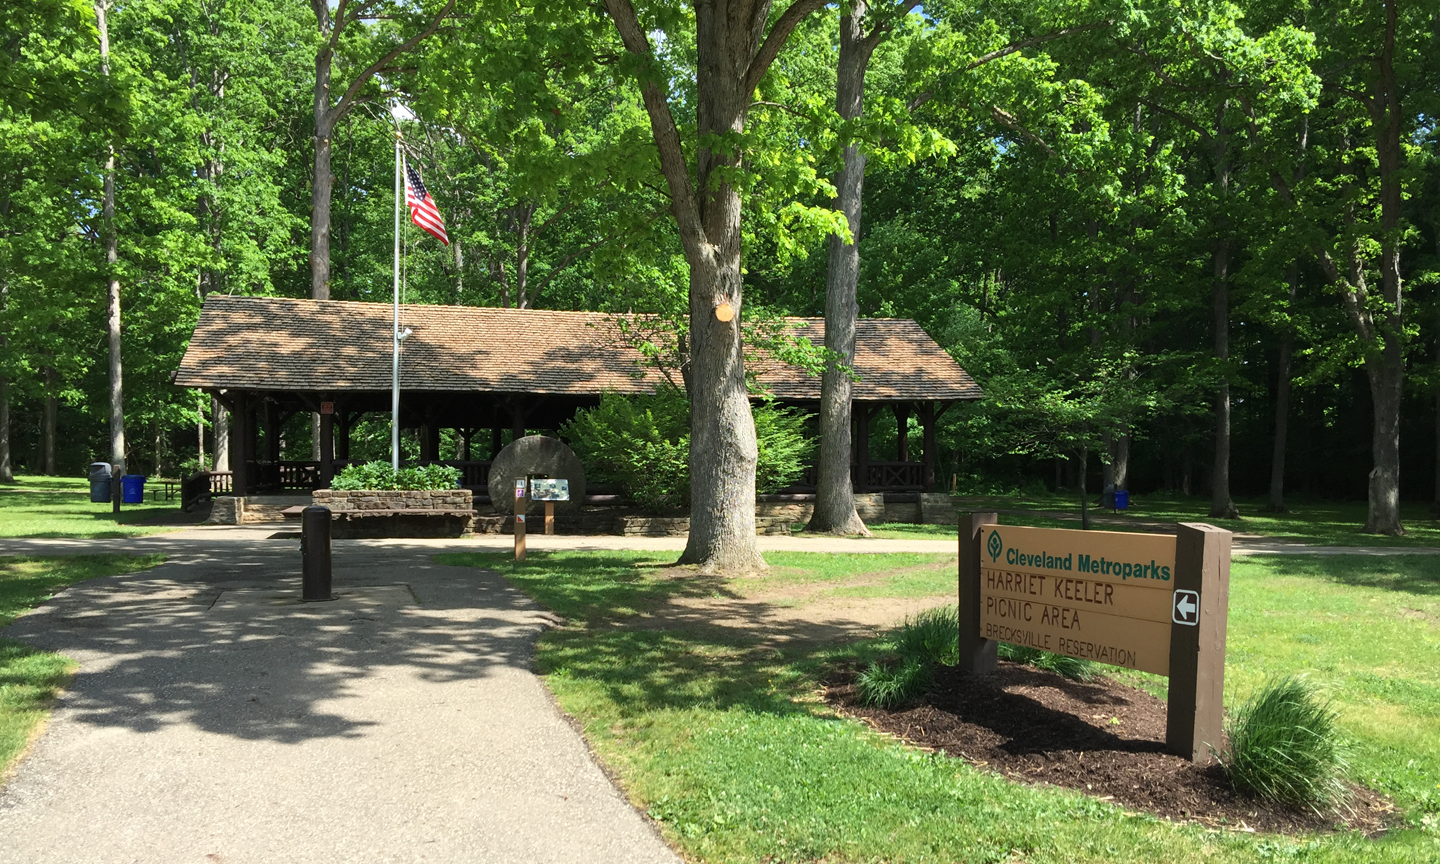 Harriet Keeler Memorial Picnic Area